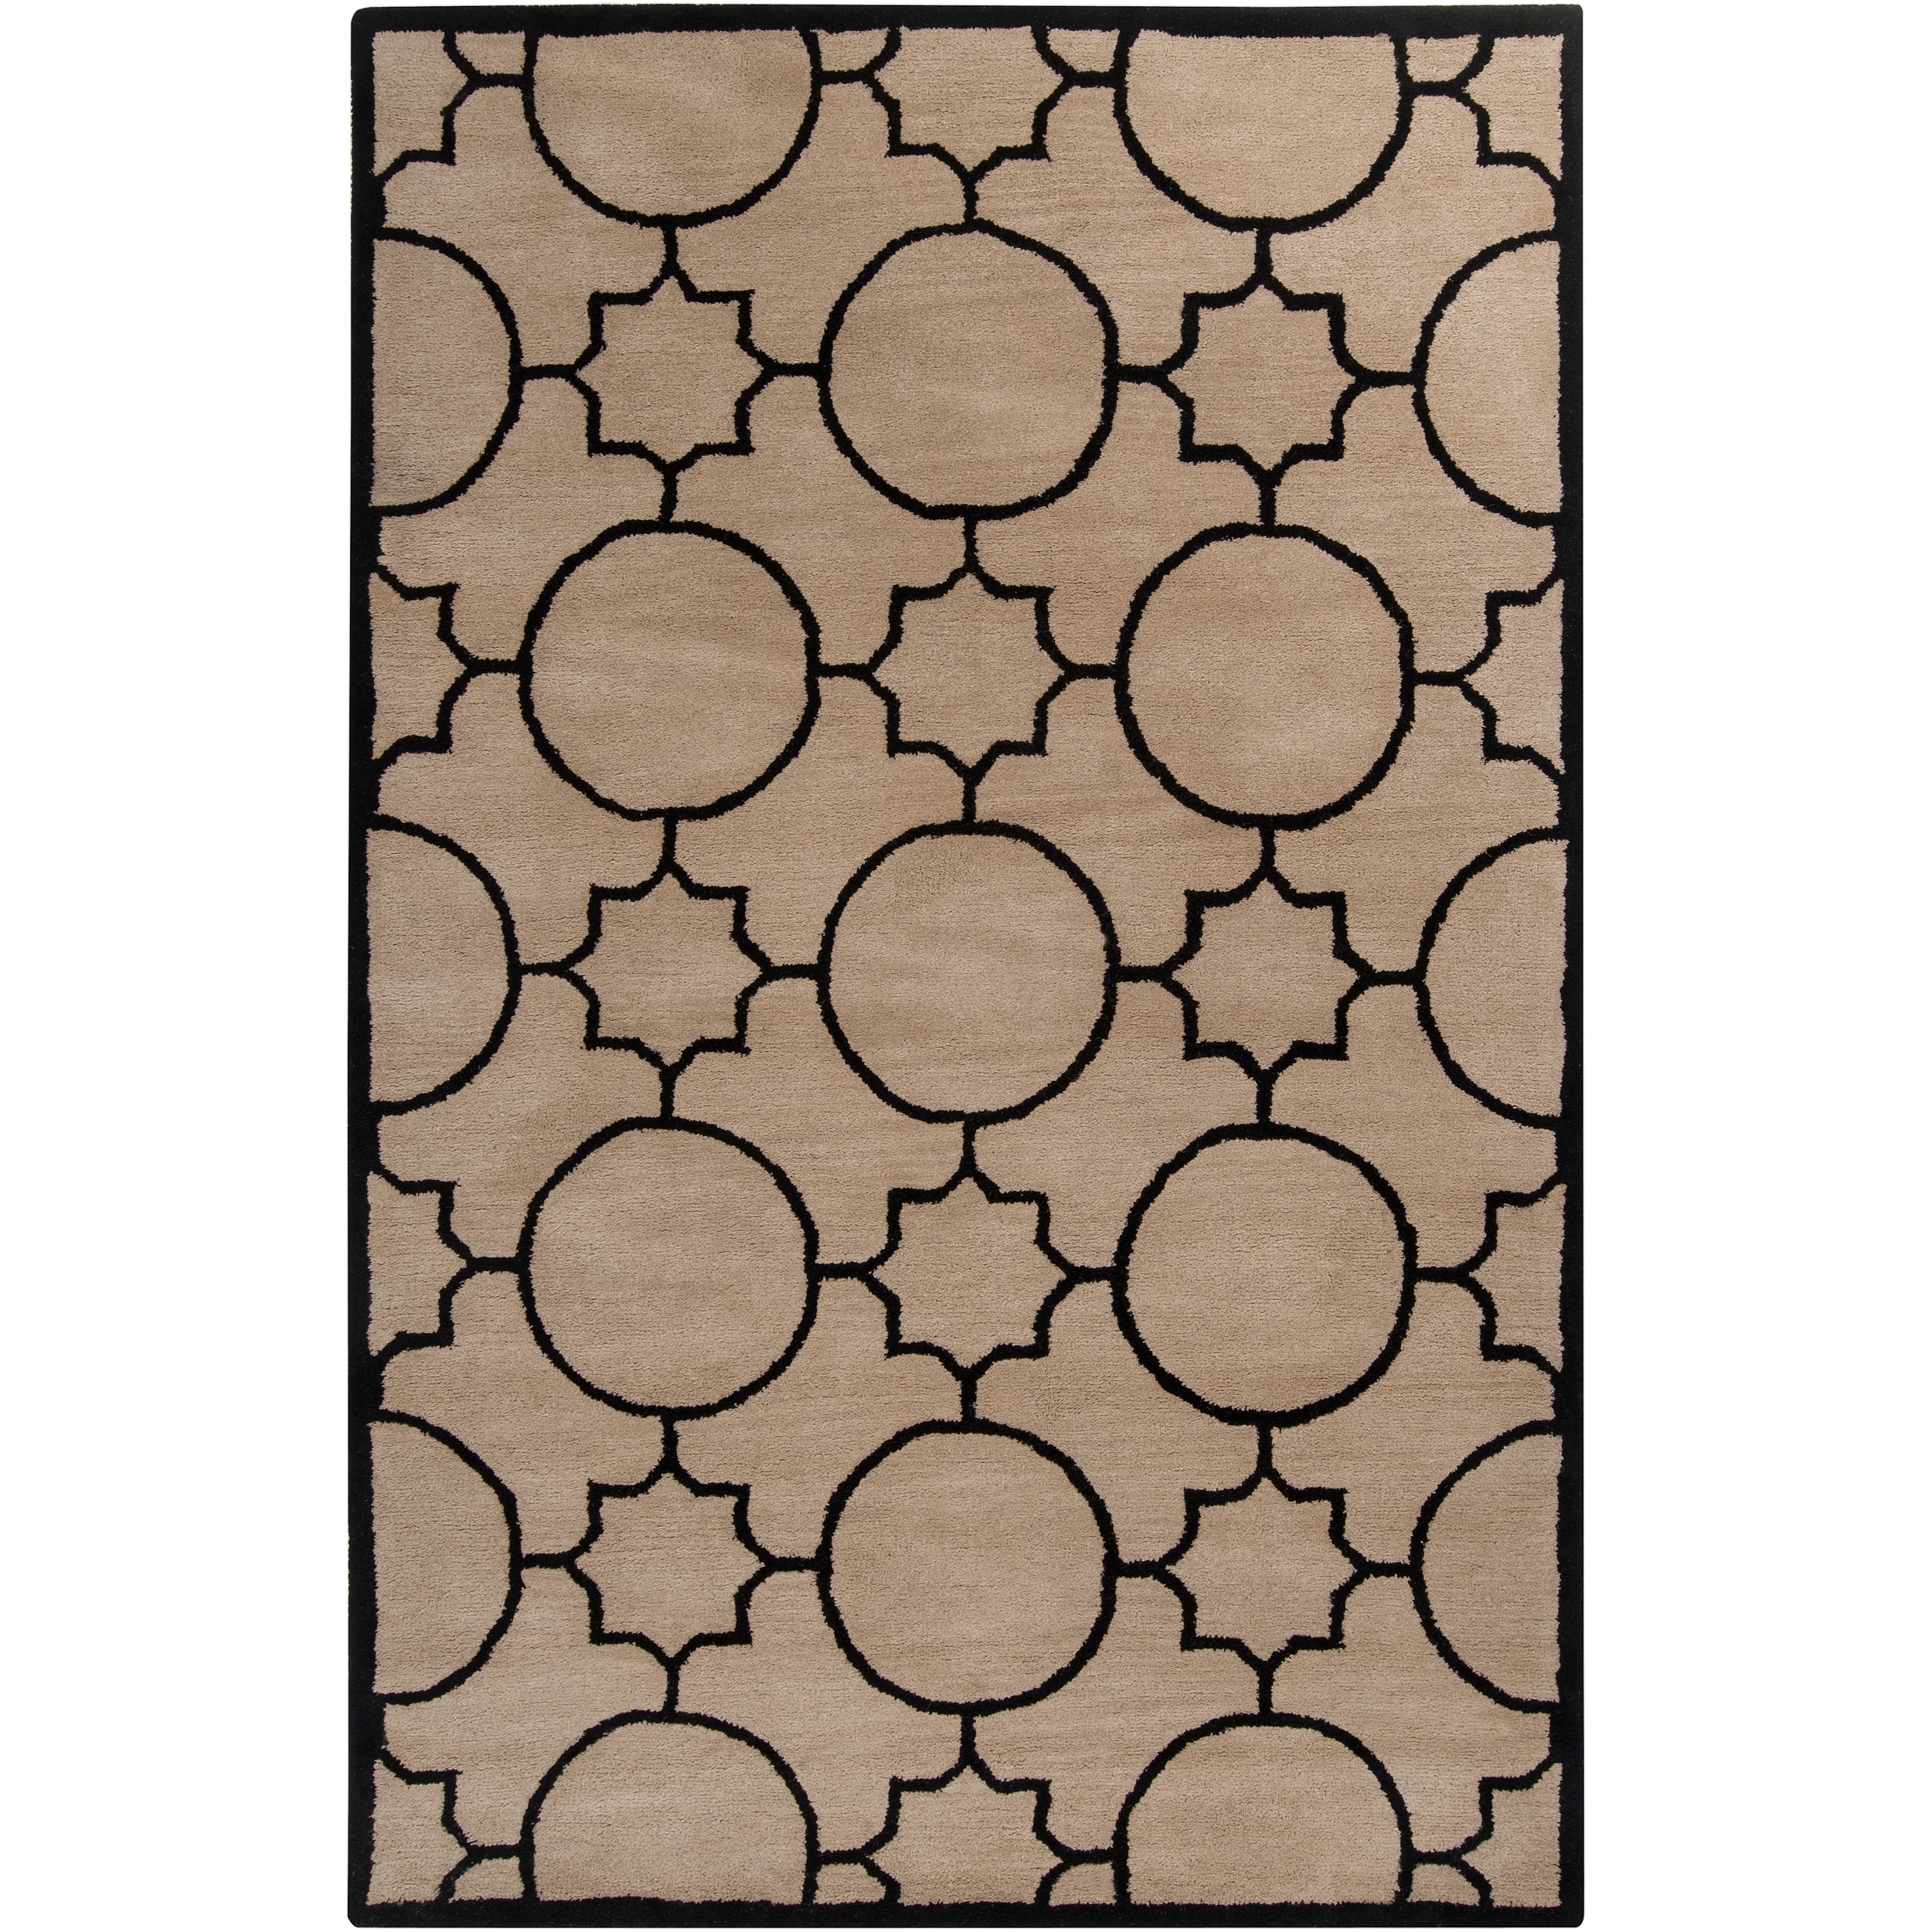 Hand-tufted Oscar Black Wool Rug (8' x 10')